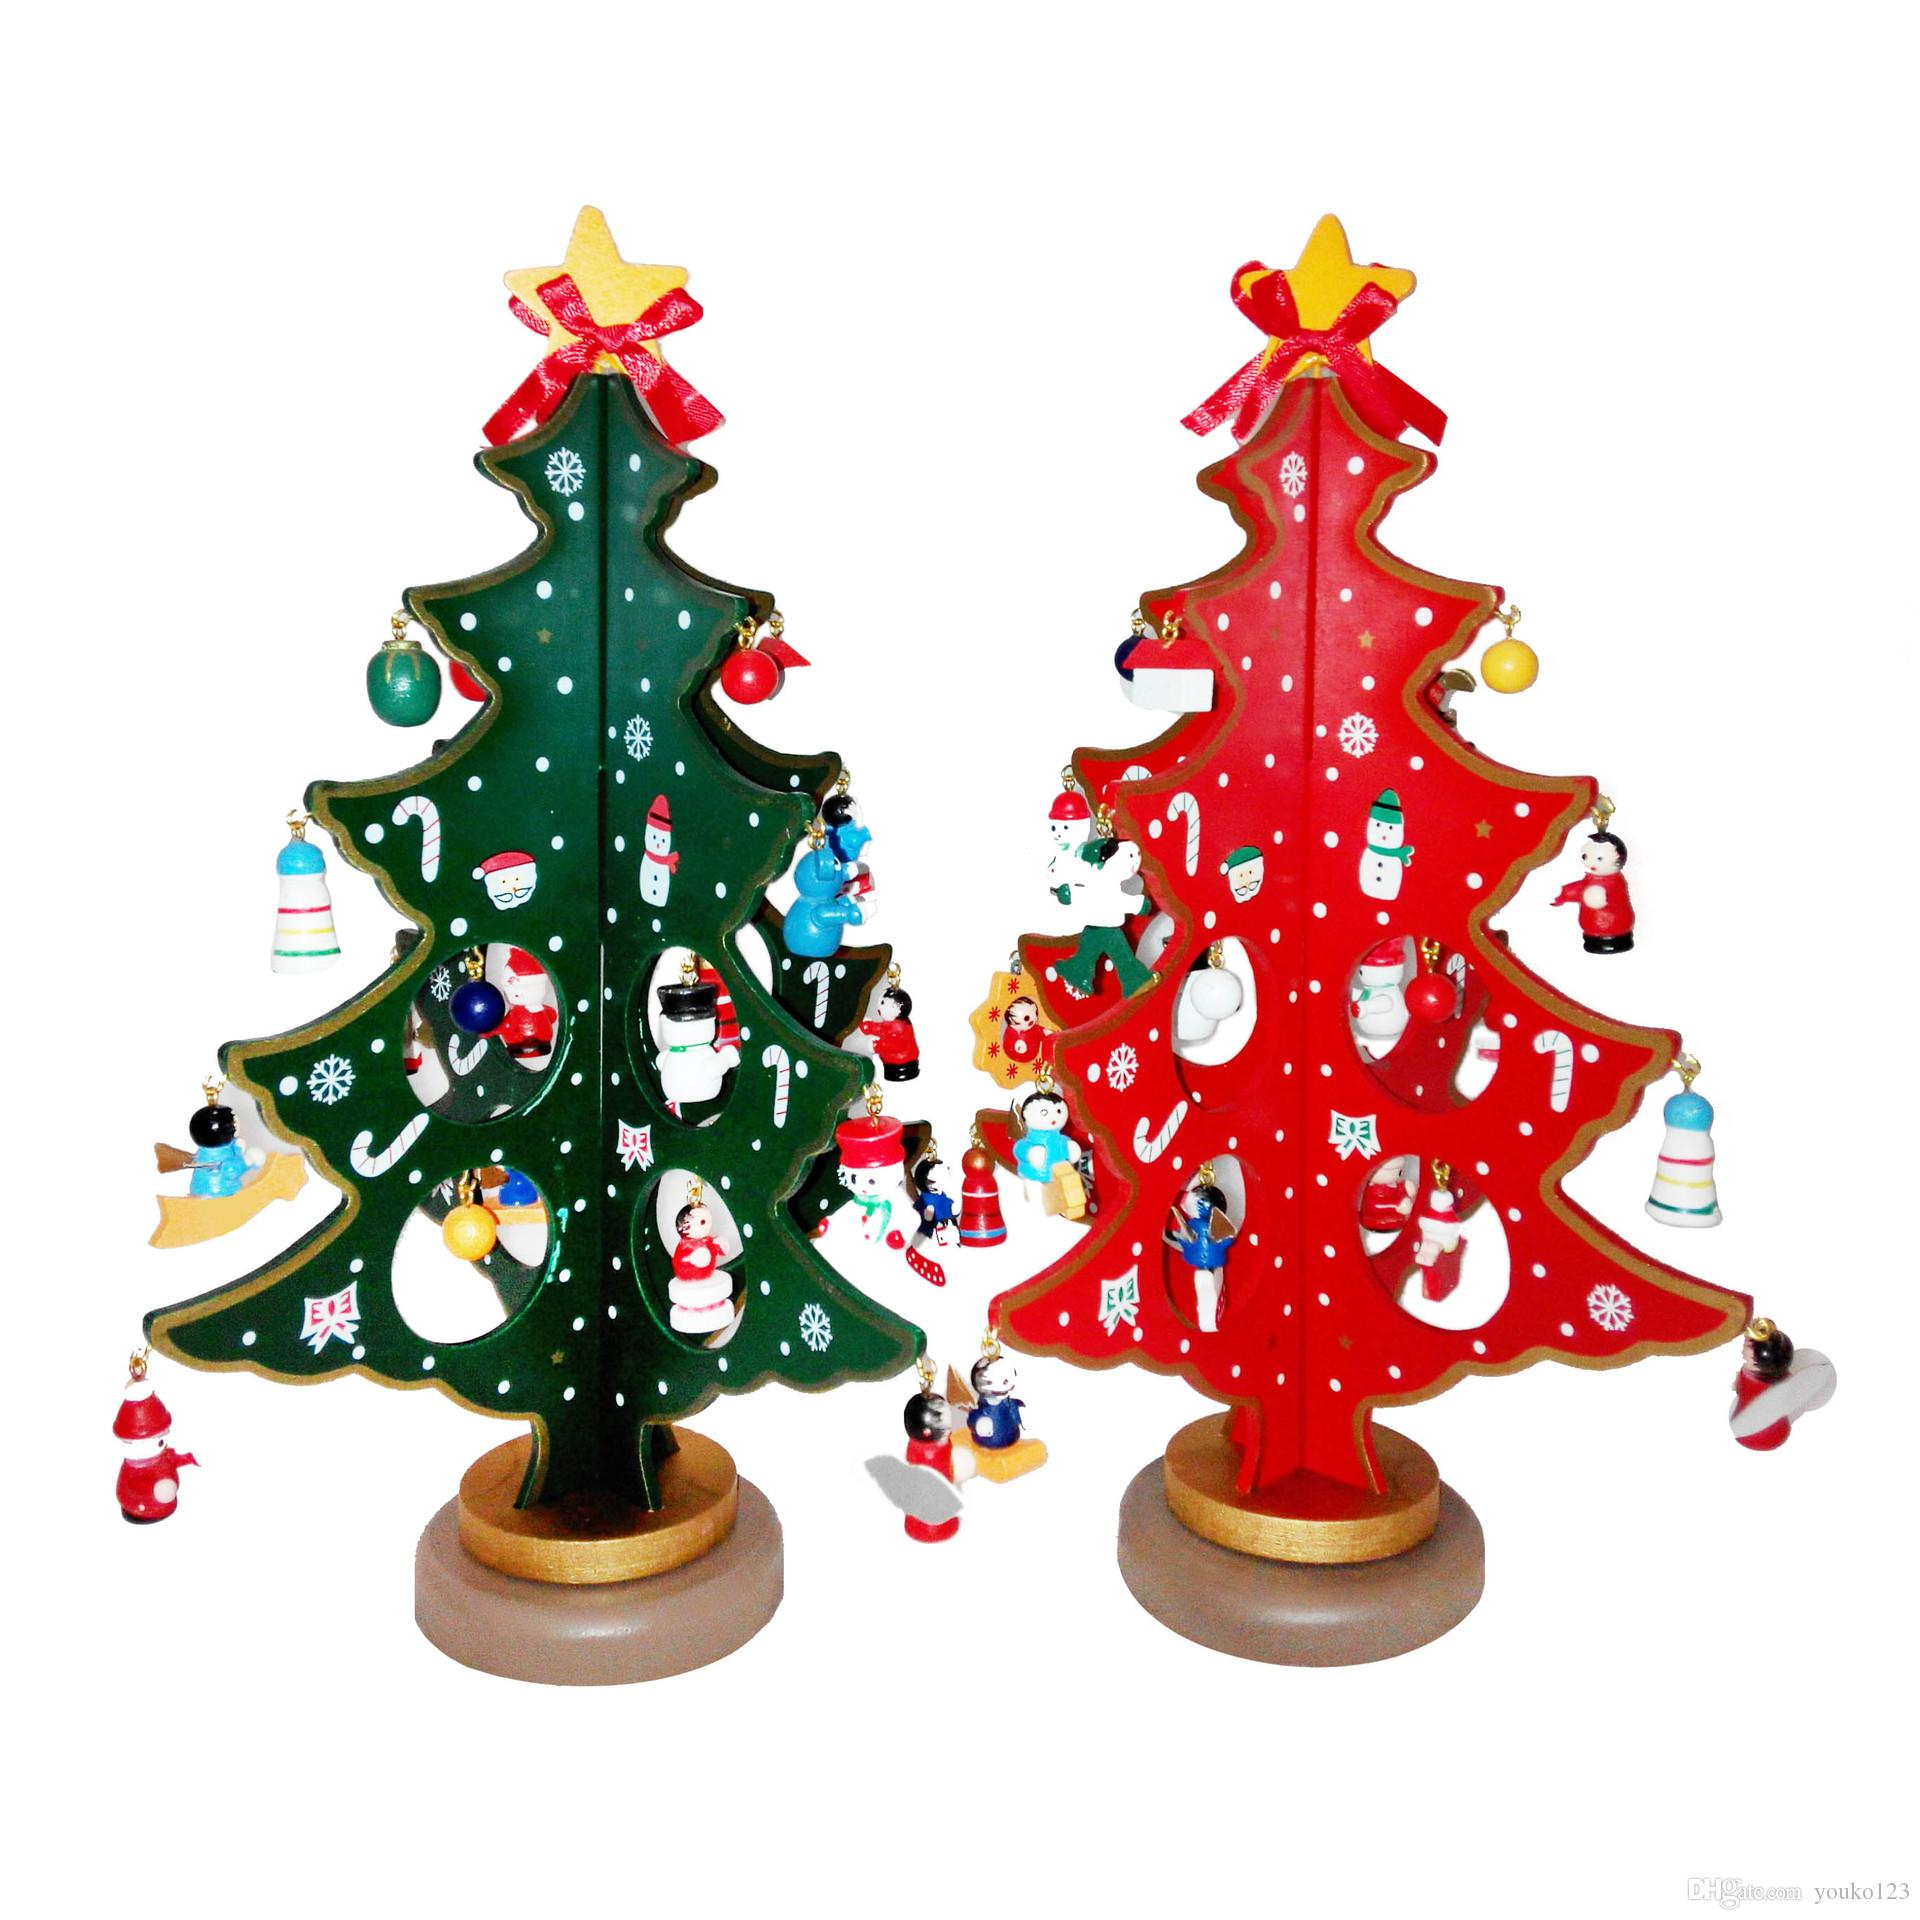 Christmas decorations online cheap - Buy christmas decorations online india ...